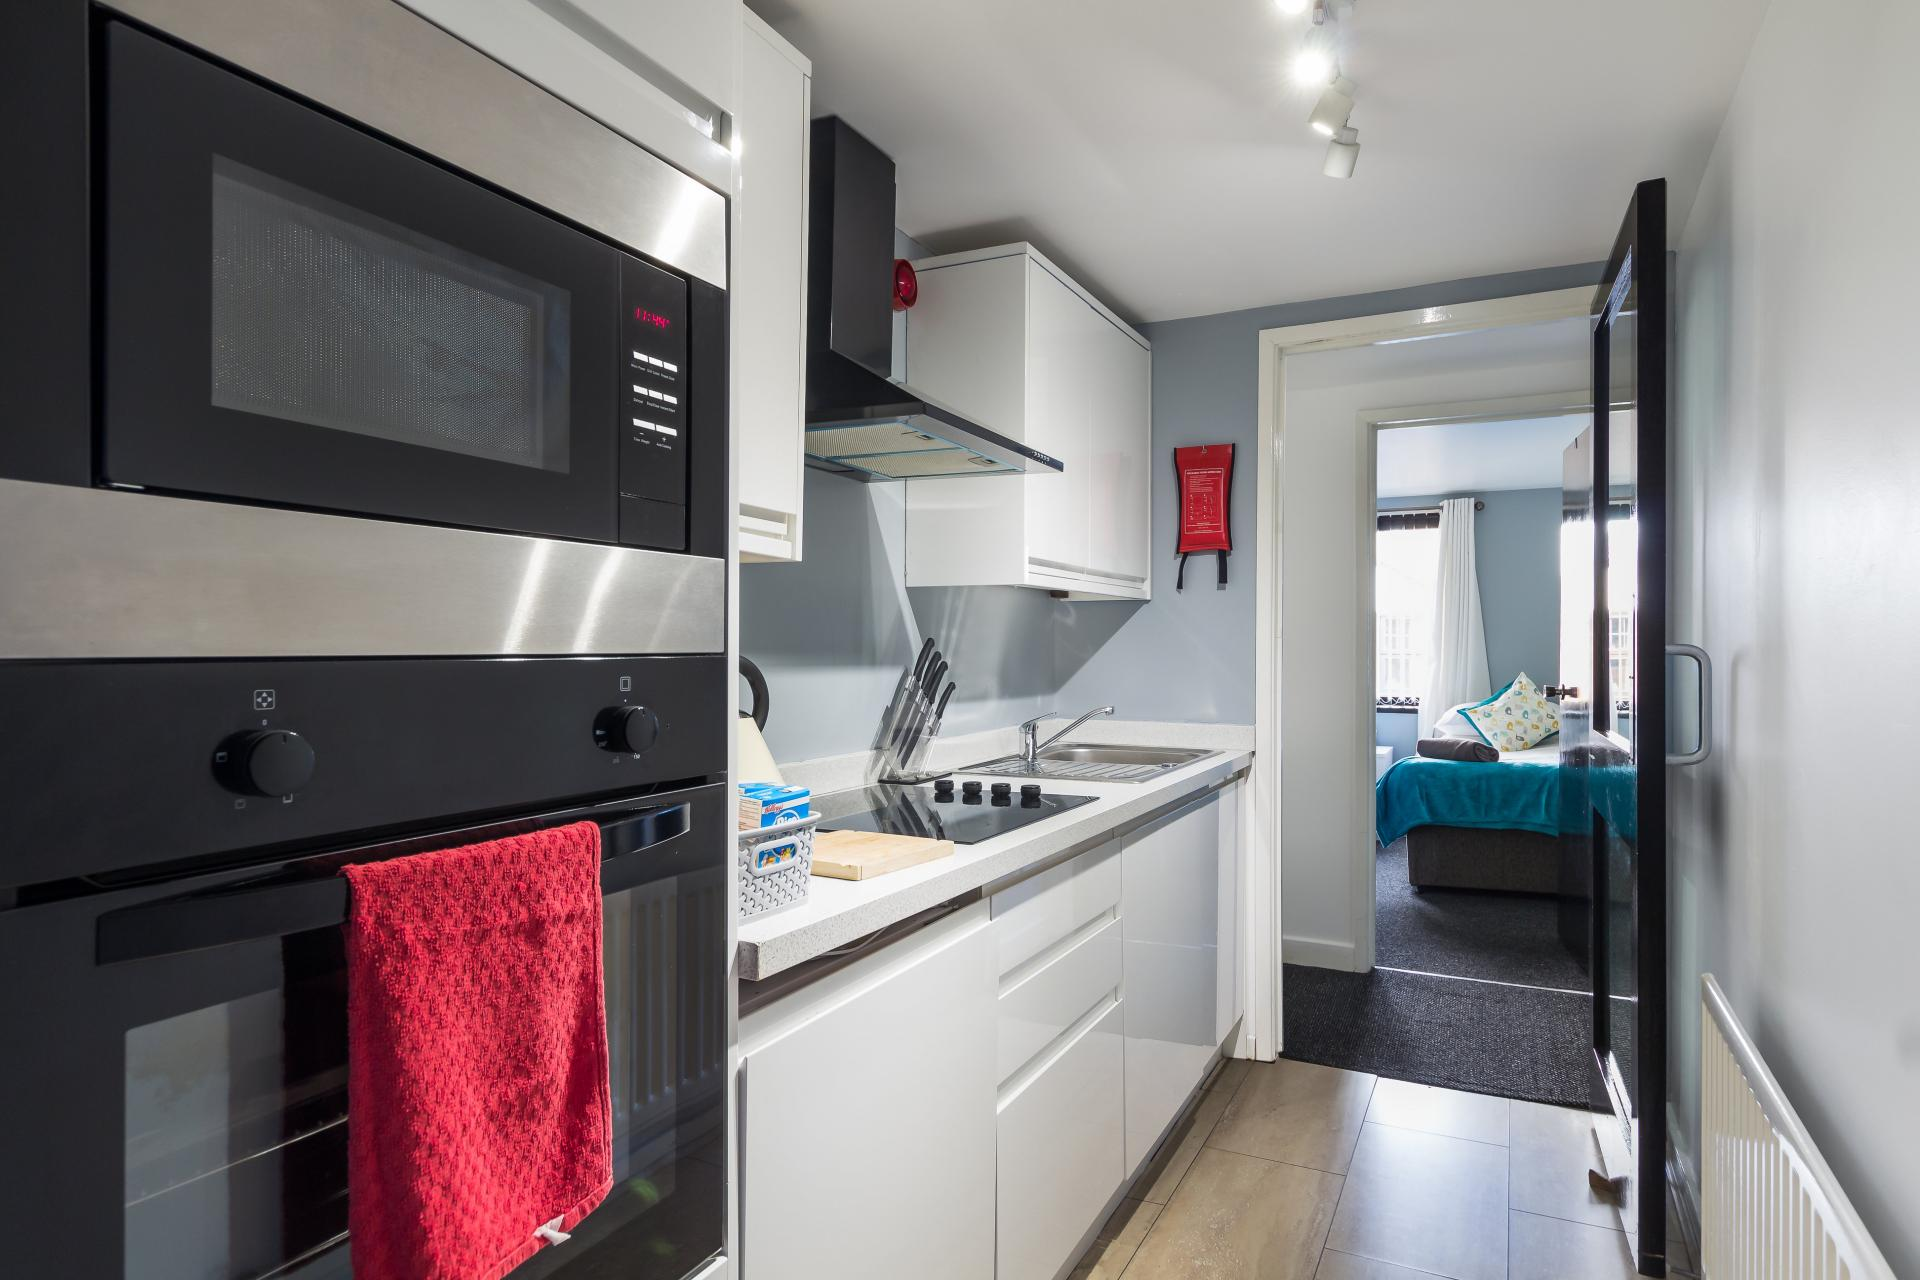 Kitchen facilities at Suitestayzzz Apartments